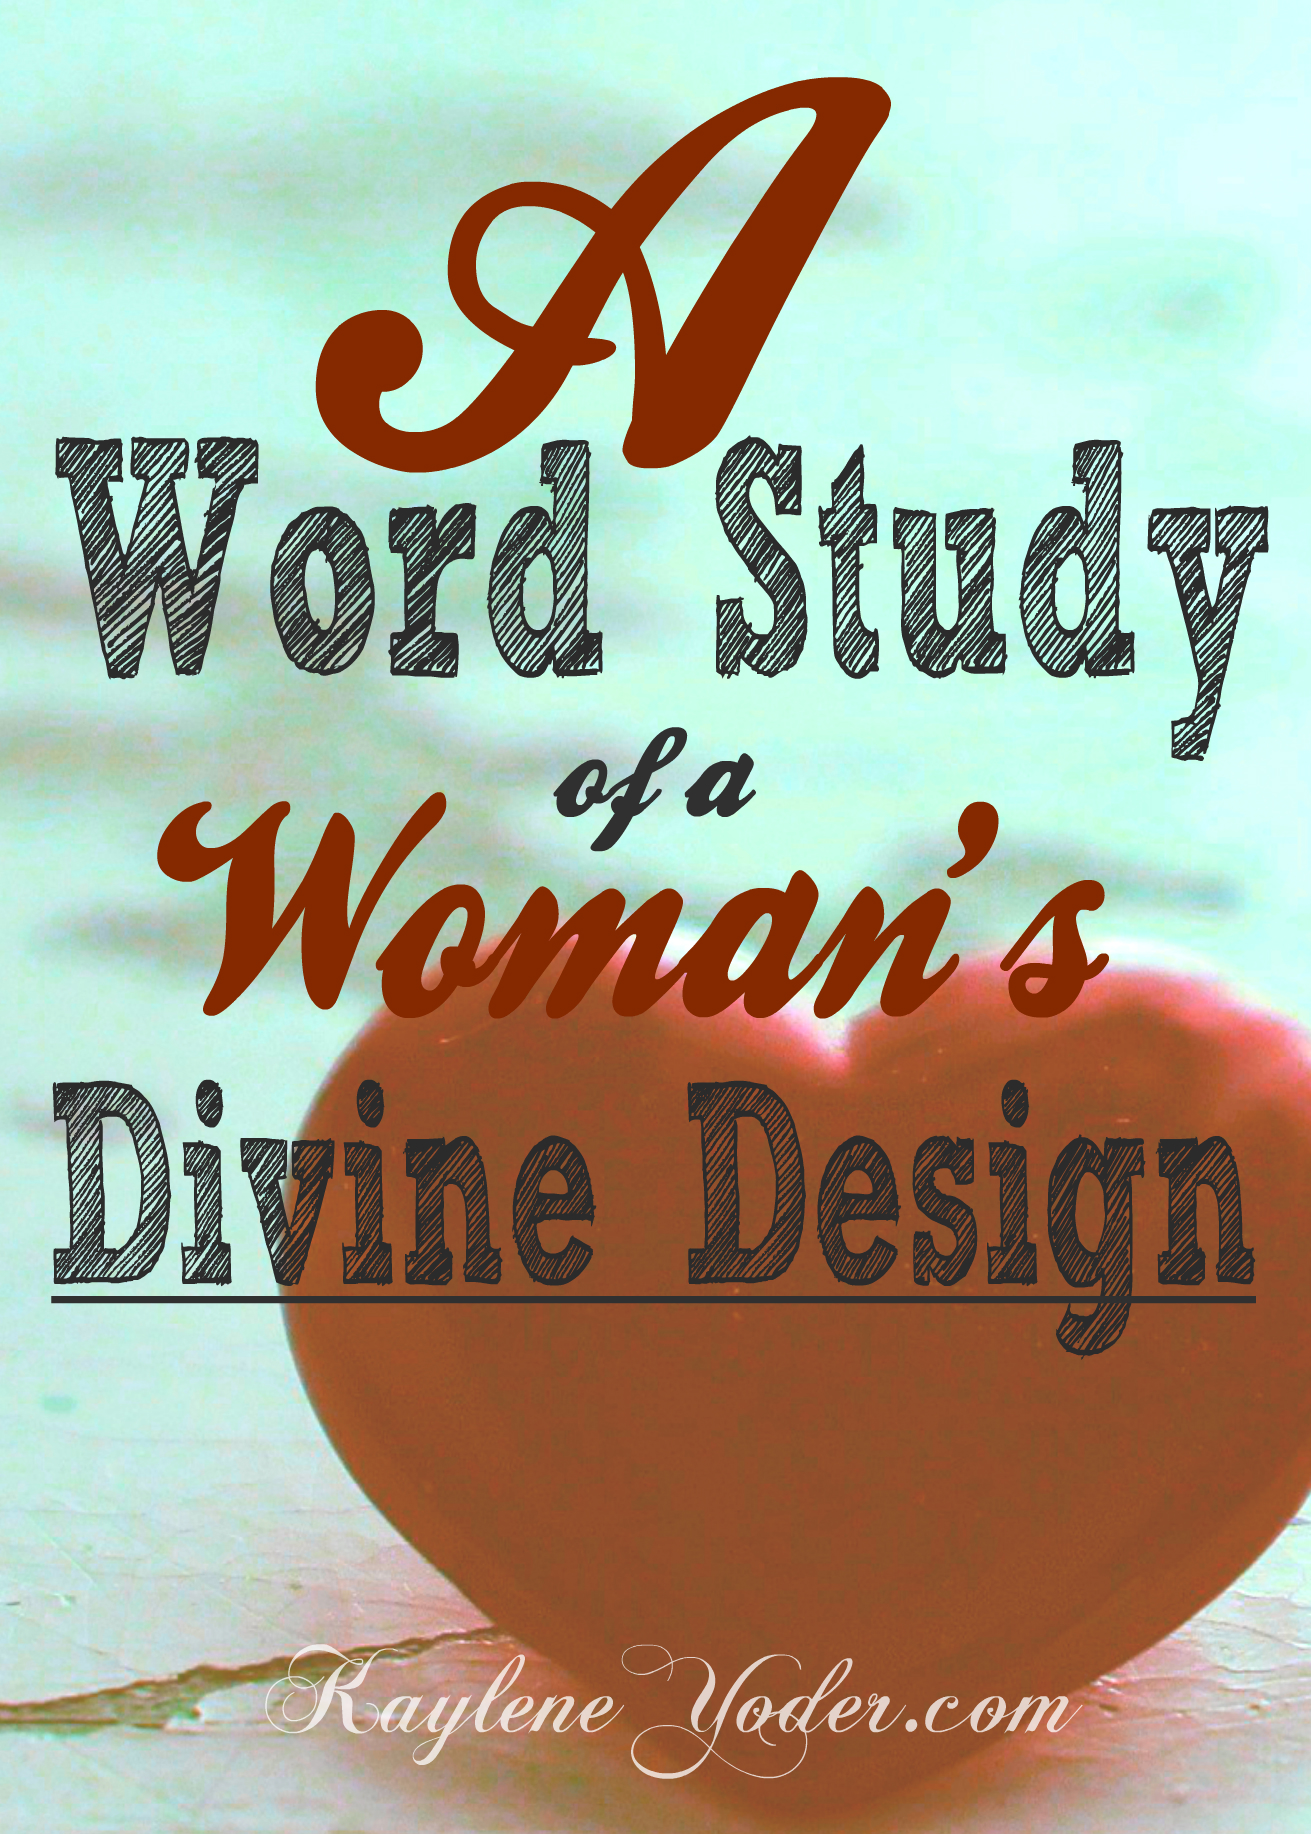 A word study of a Woman's Divine Design